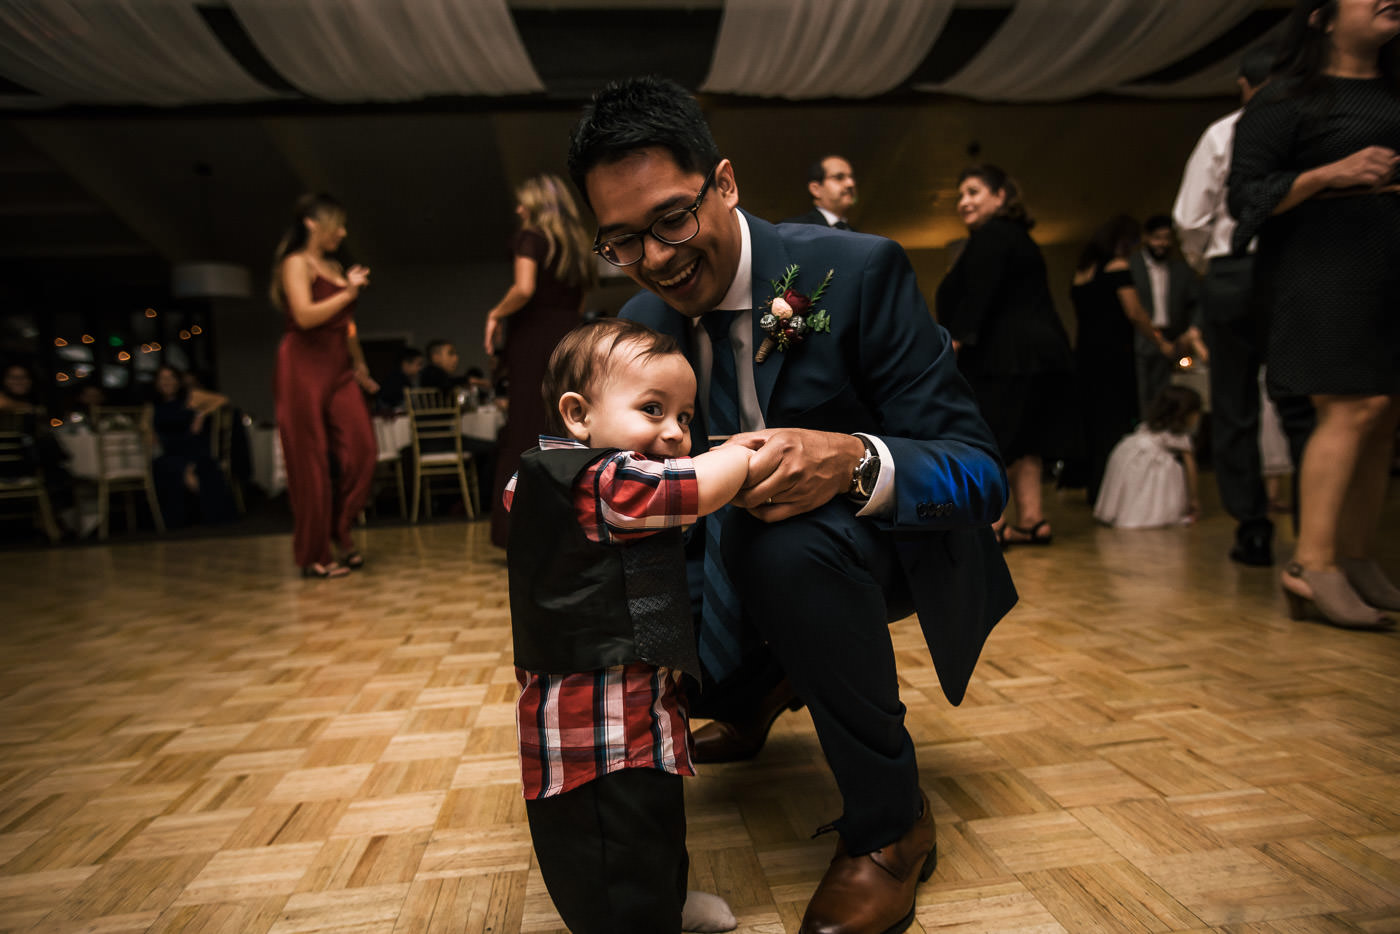 Groom dances with baby at wedding reception.